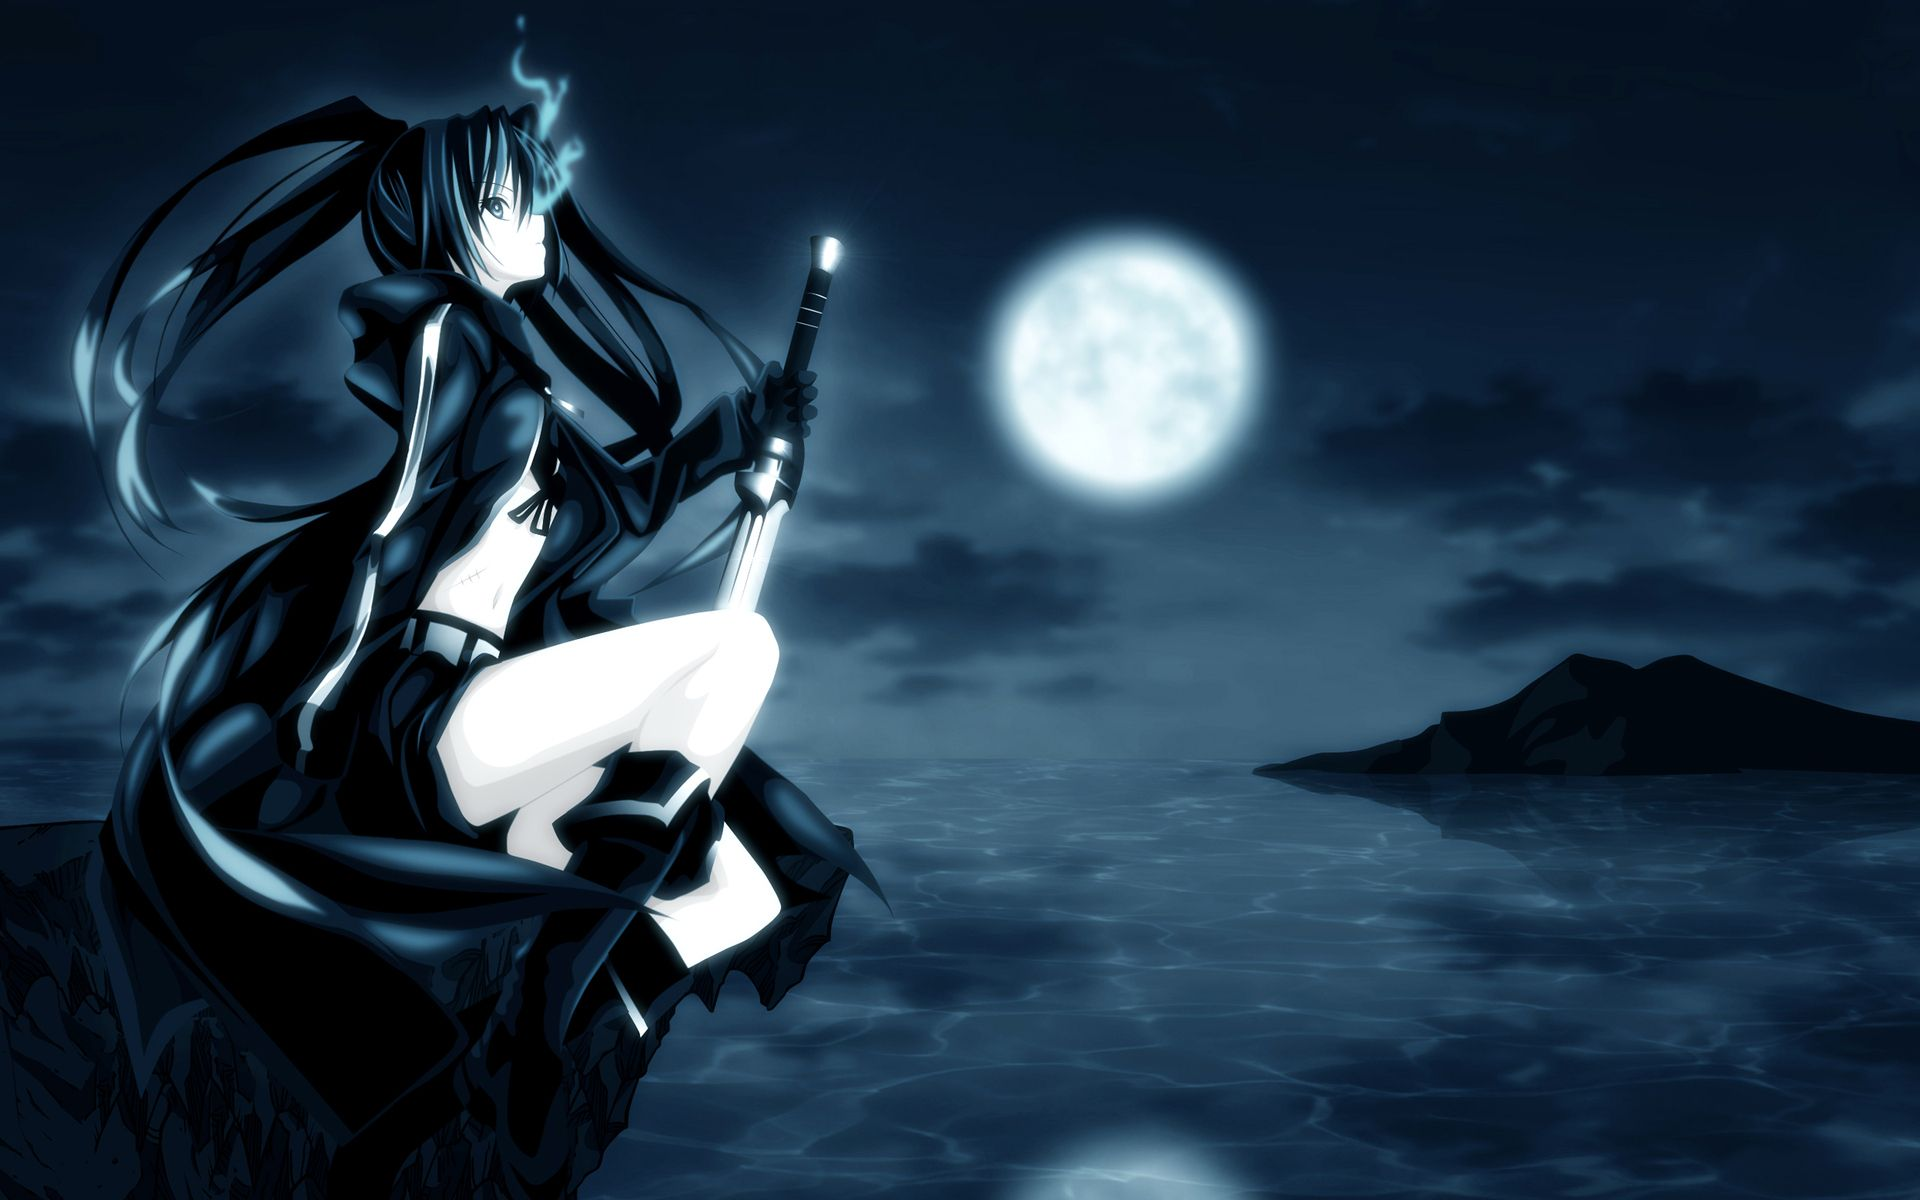 nightcore nightcore heartbeat photo black rock shooter anime wallpaper